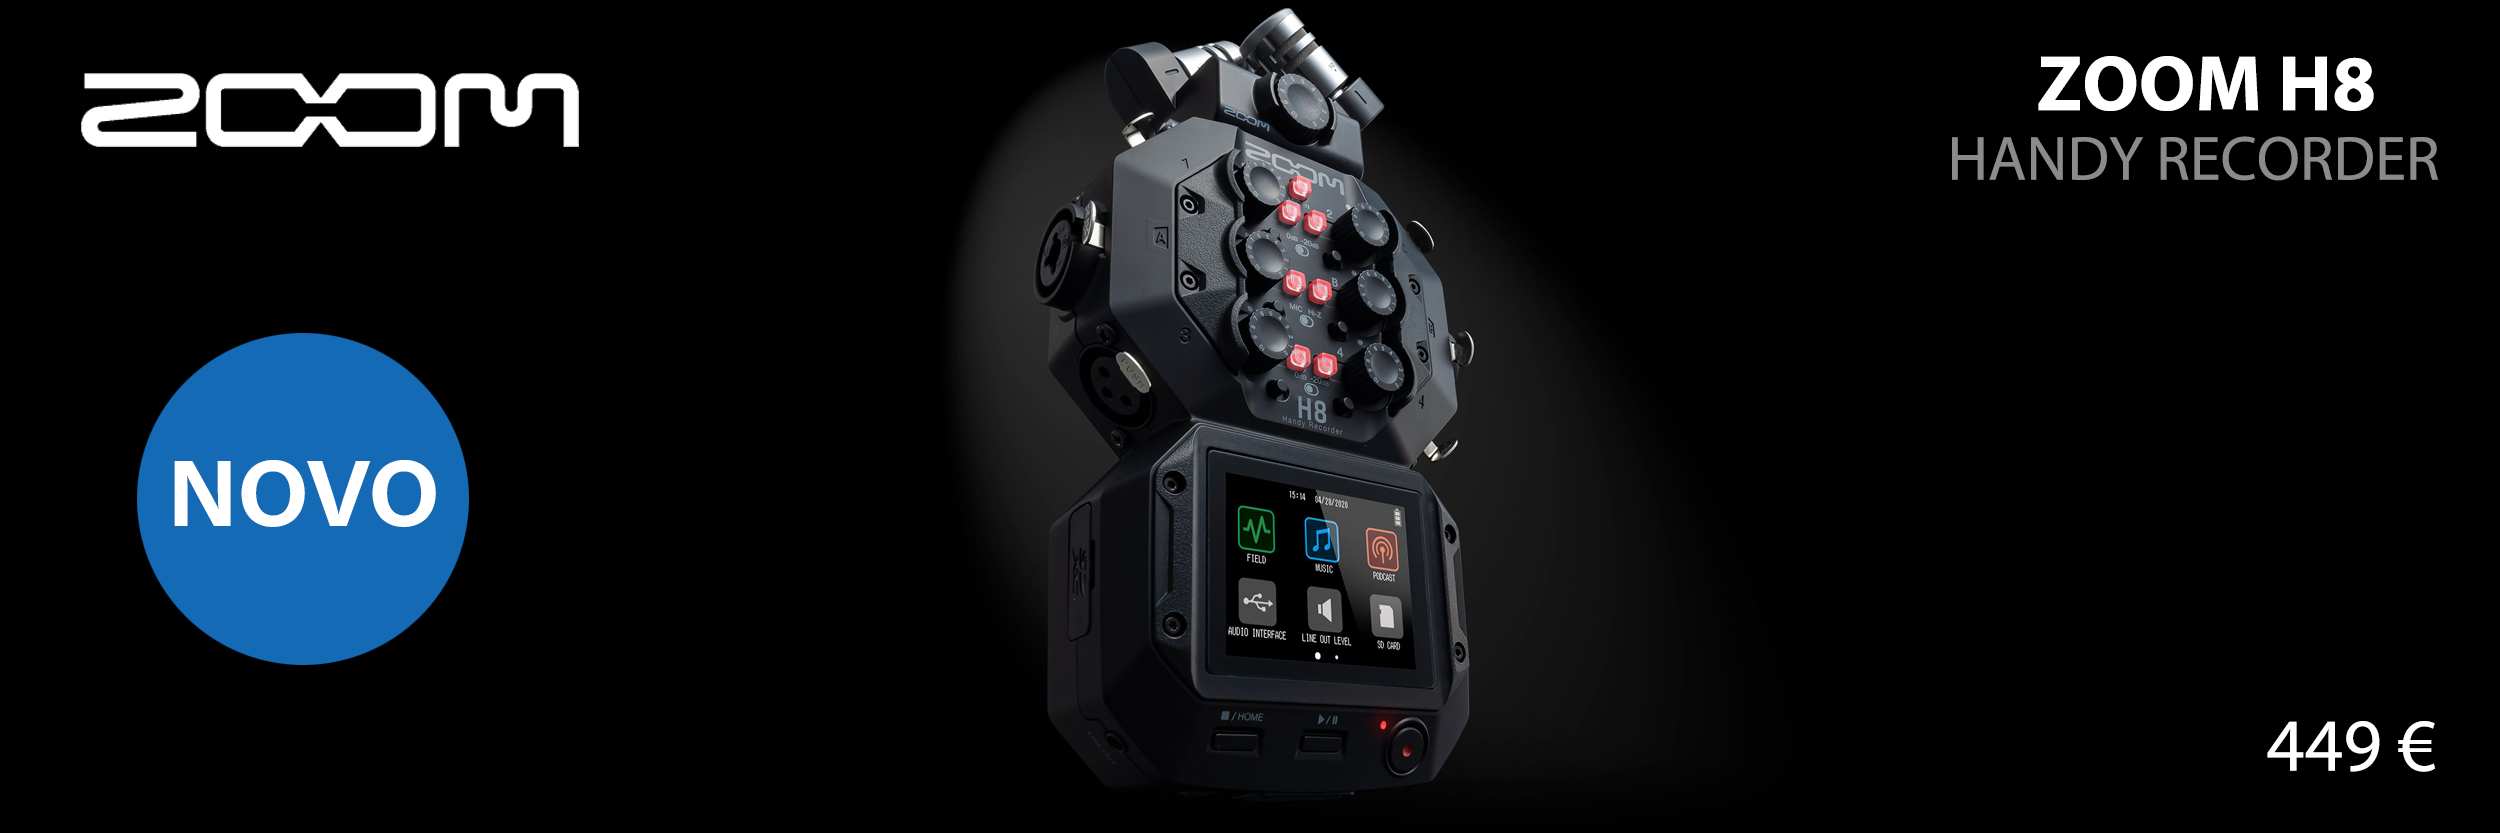 Zoom H8 | Handheld 8-input / 12-track Portable Handy Recorder